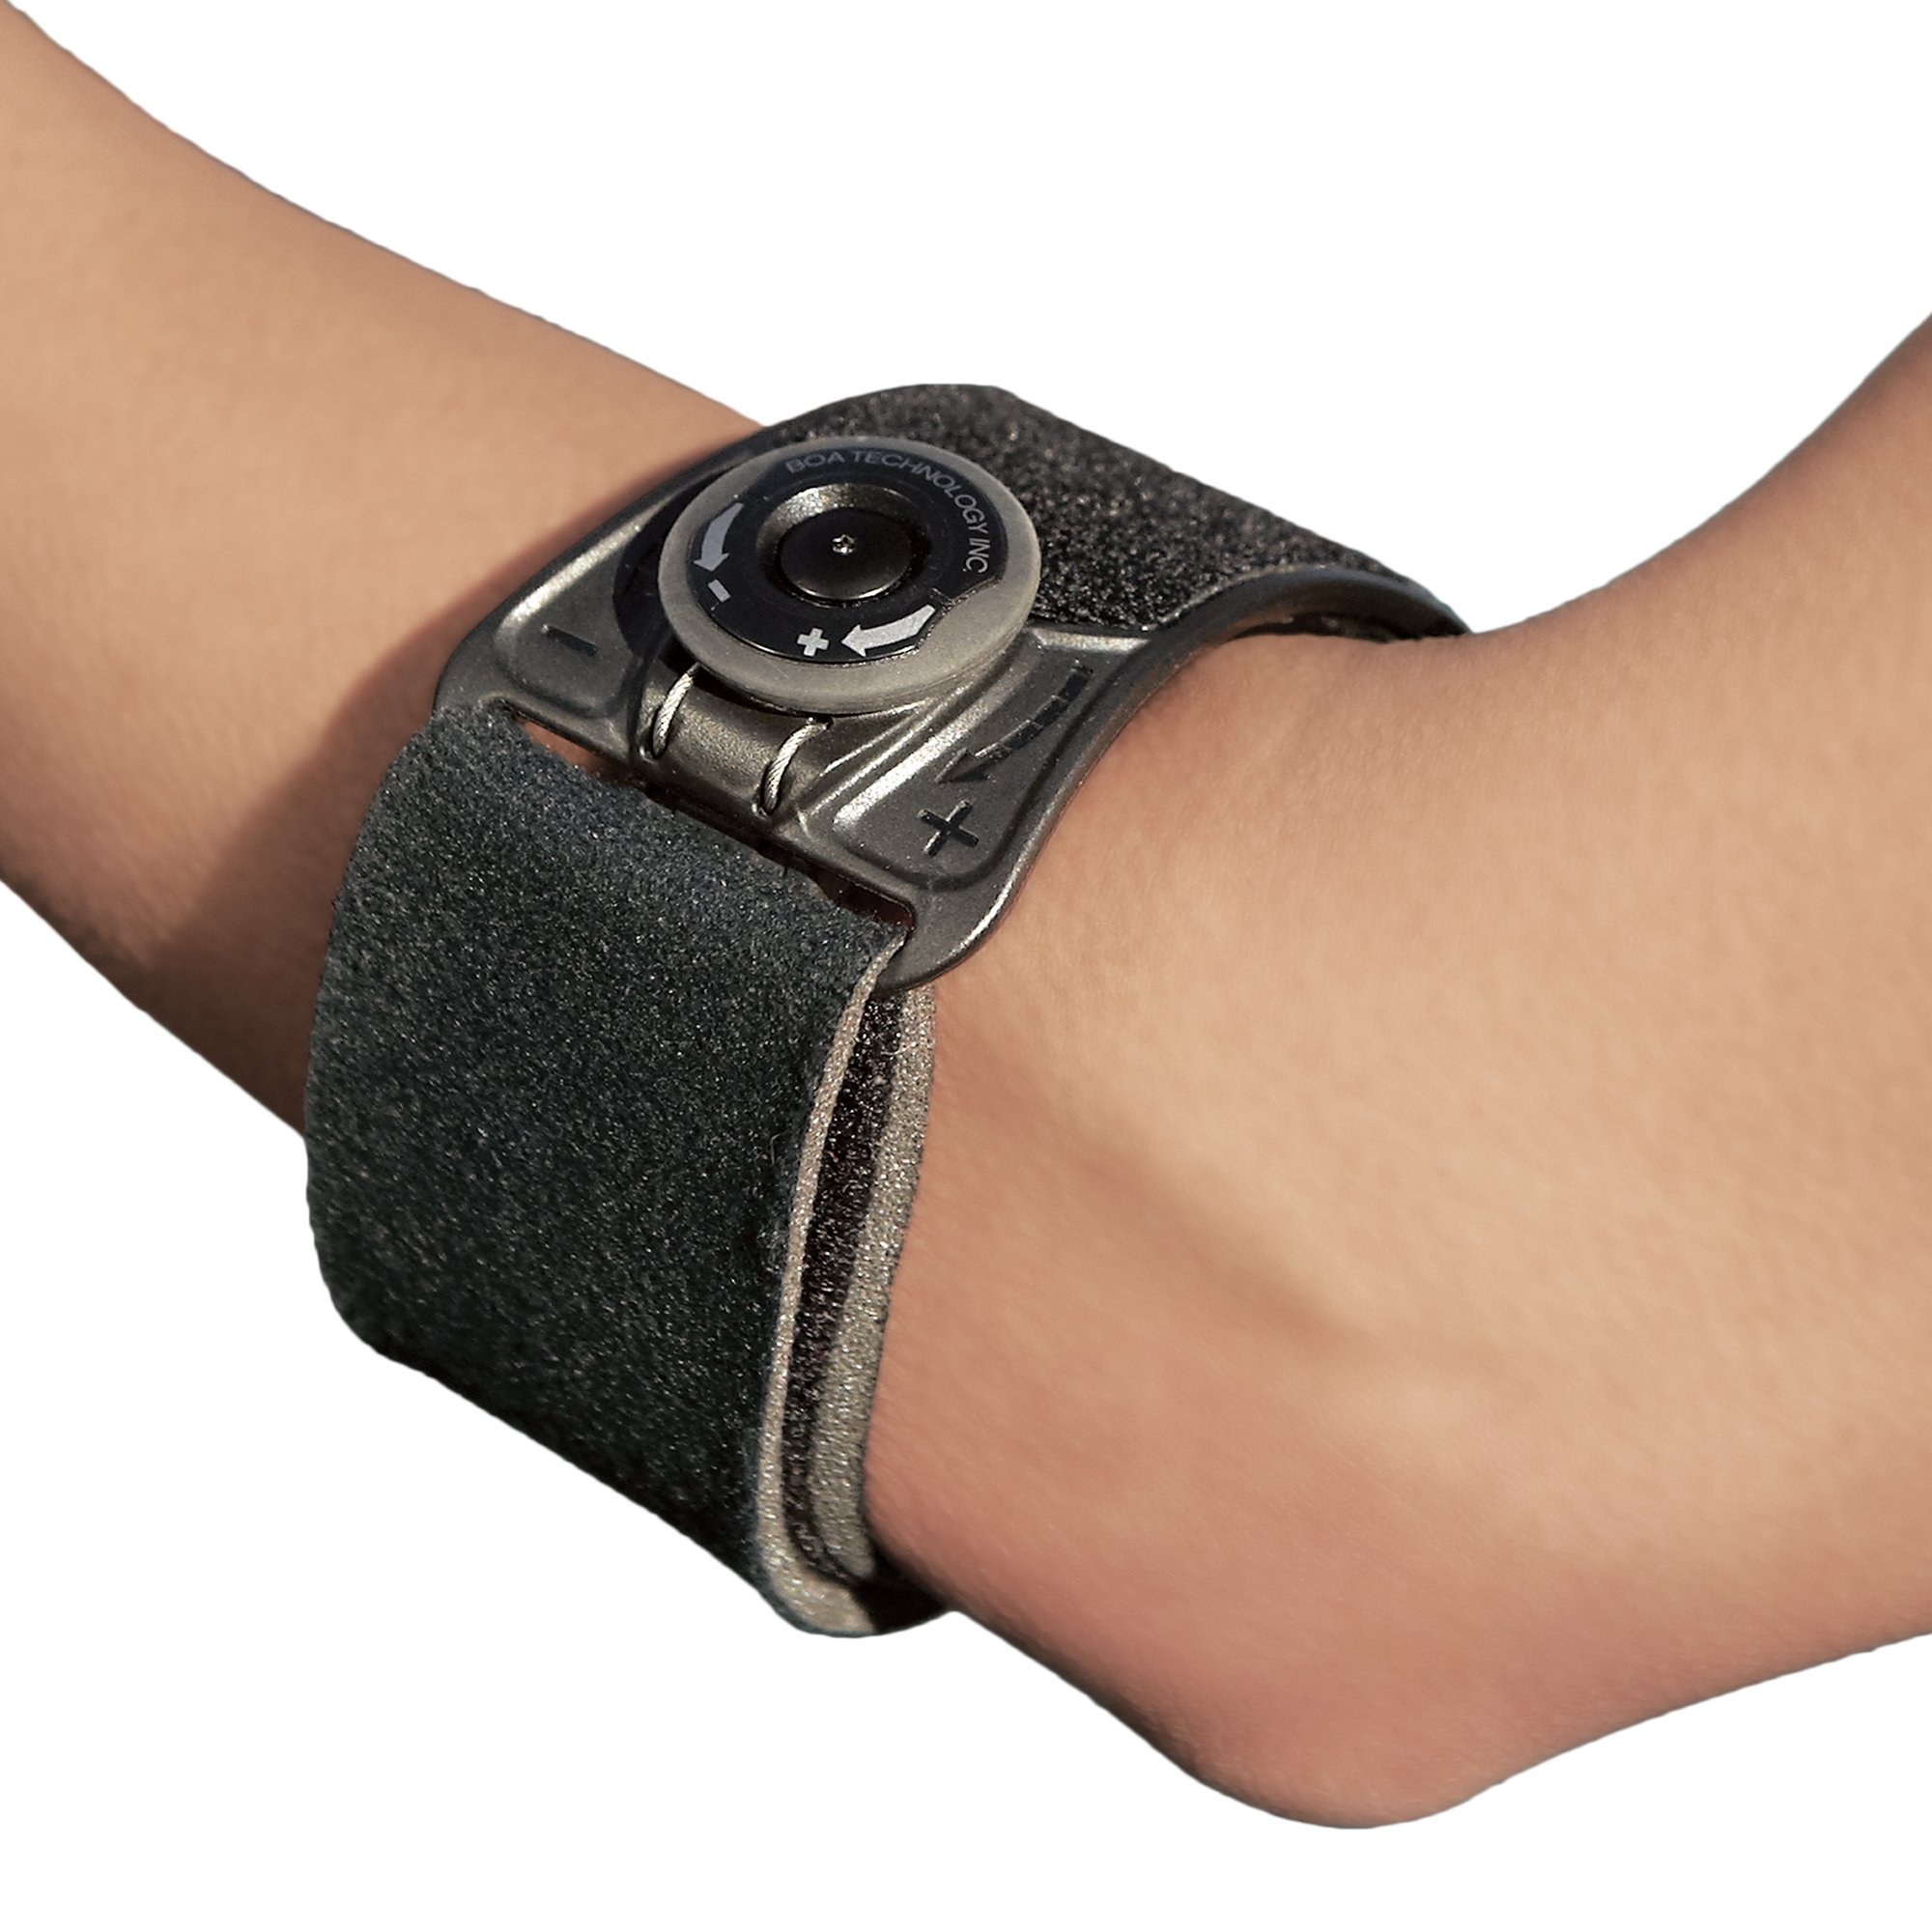 ACE Brand Custom Dial Elbow Strap, America's Most Trusted Brand of Braces and Supports, Money Back Satisfaction Guarantee